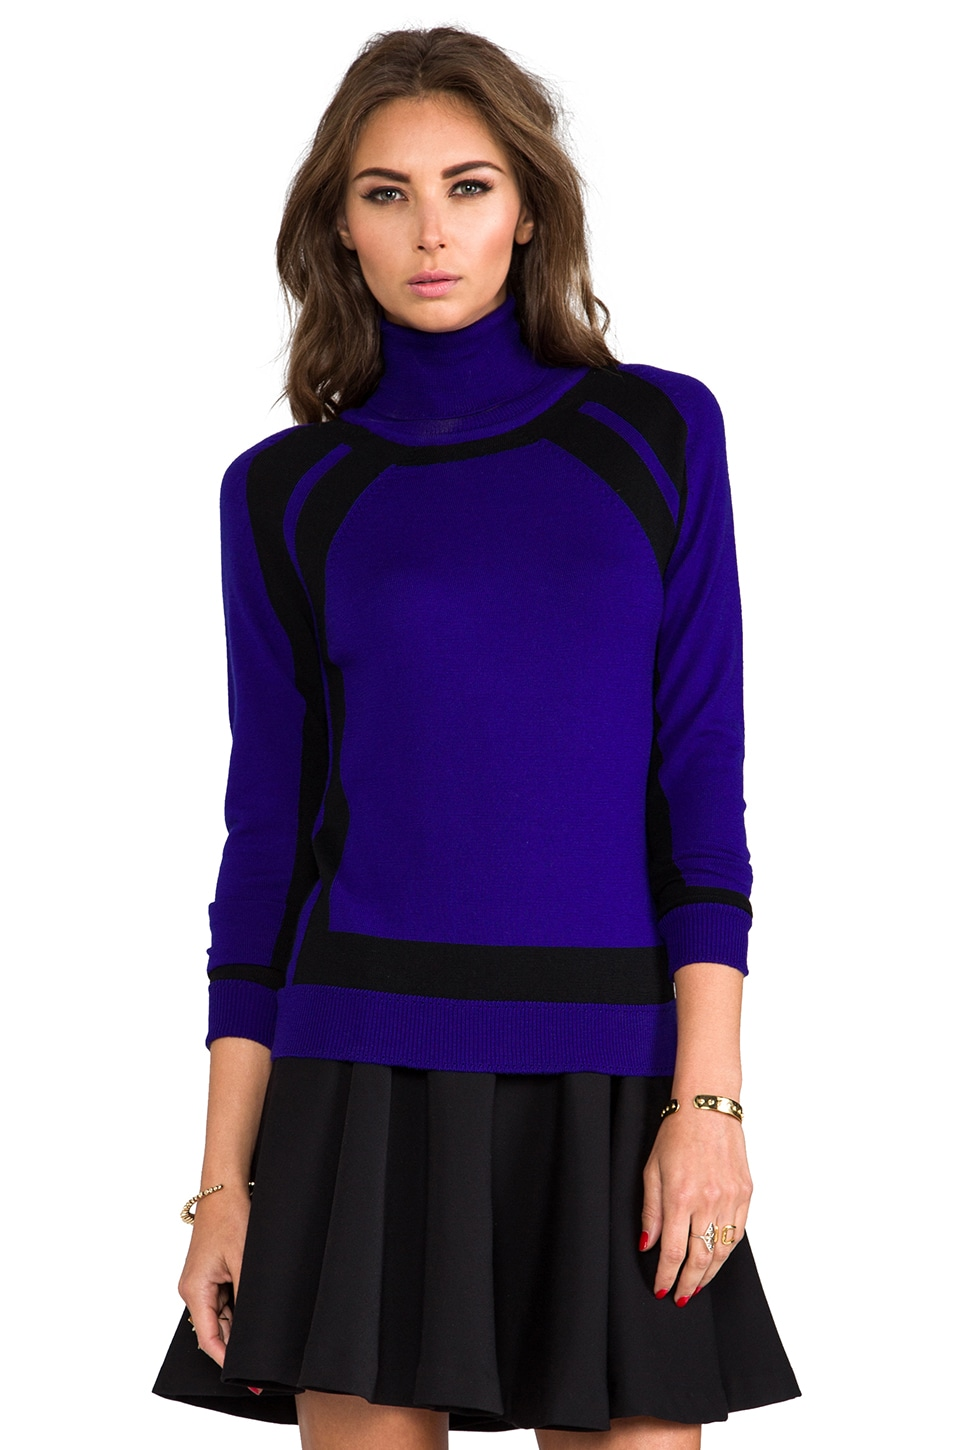 MILLY Knit Colorblock Turtleneck Sweater in Black/Colbalt